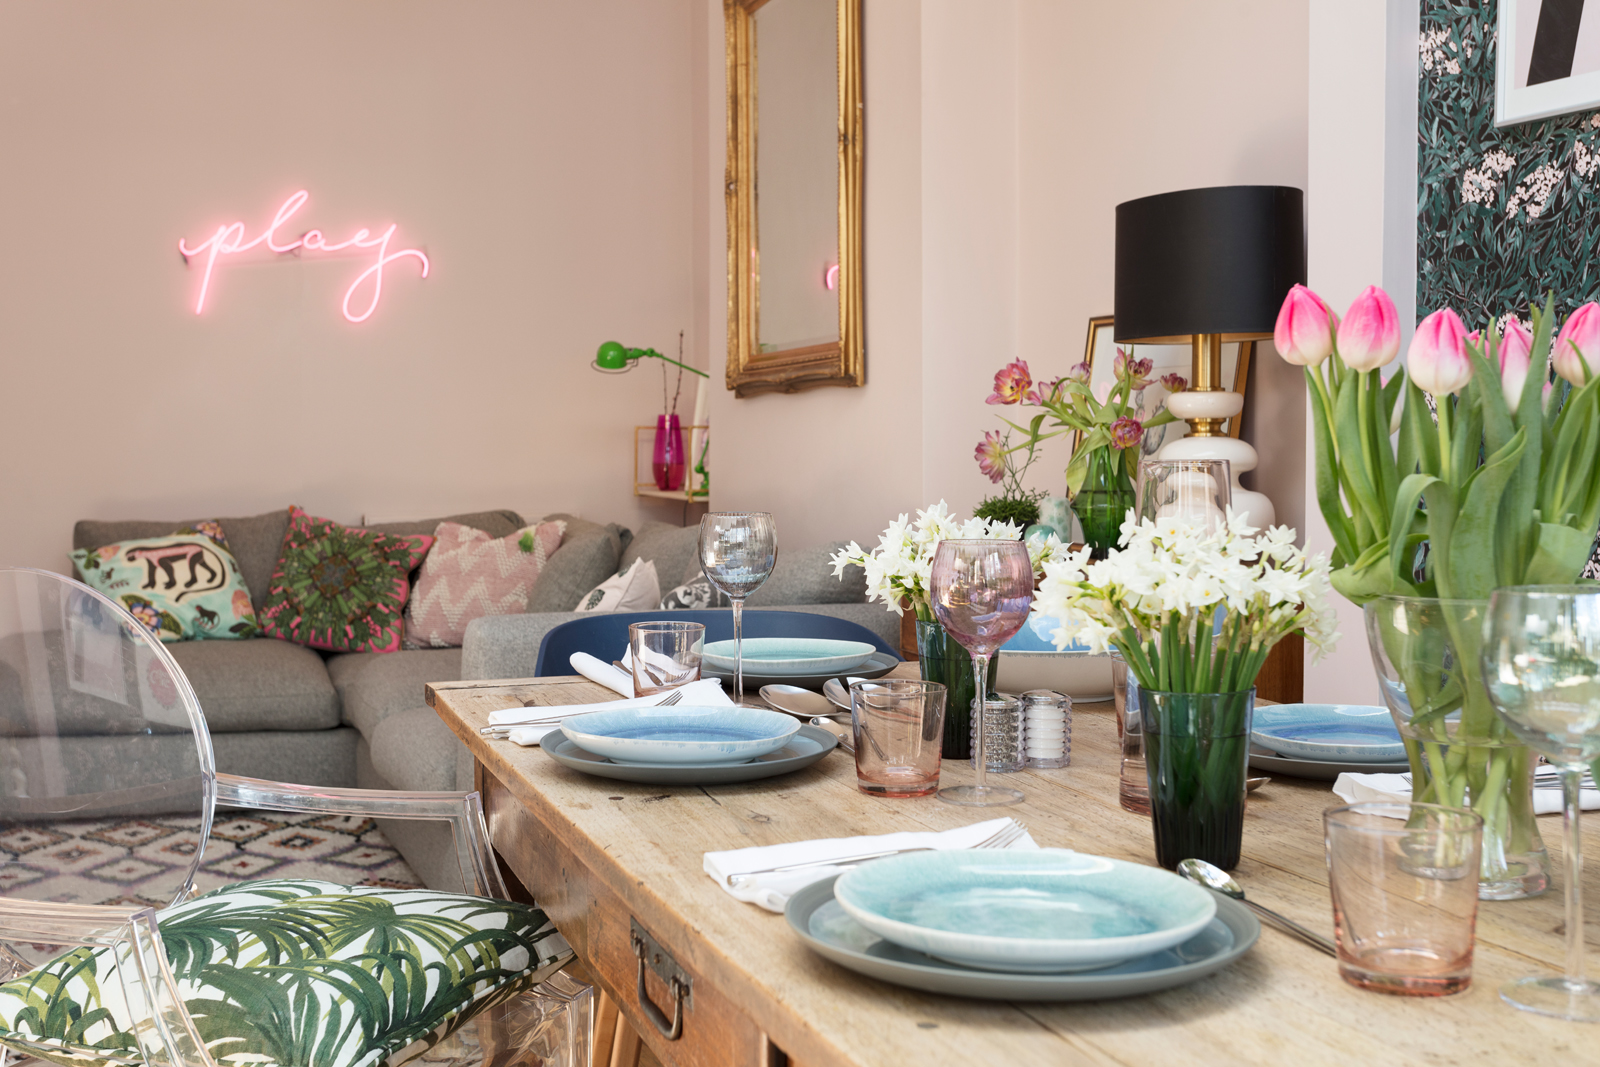 Spring has sprung in The Pink House dining room/Photo: Susie Lowe